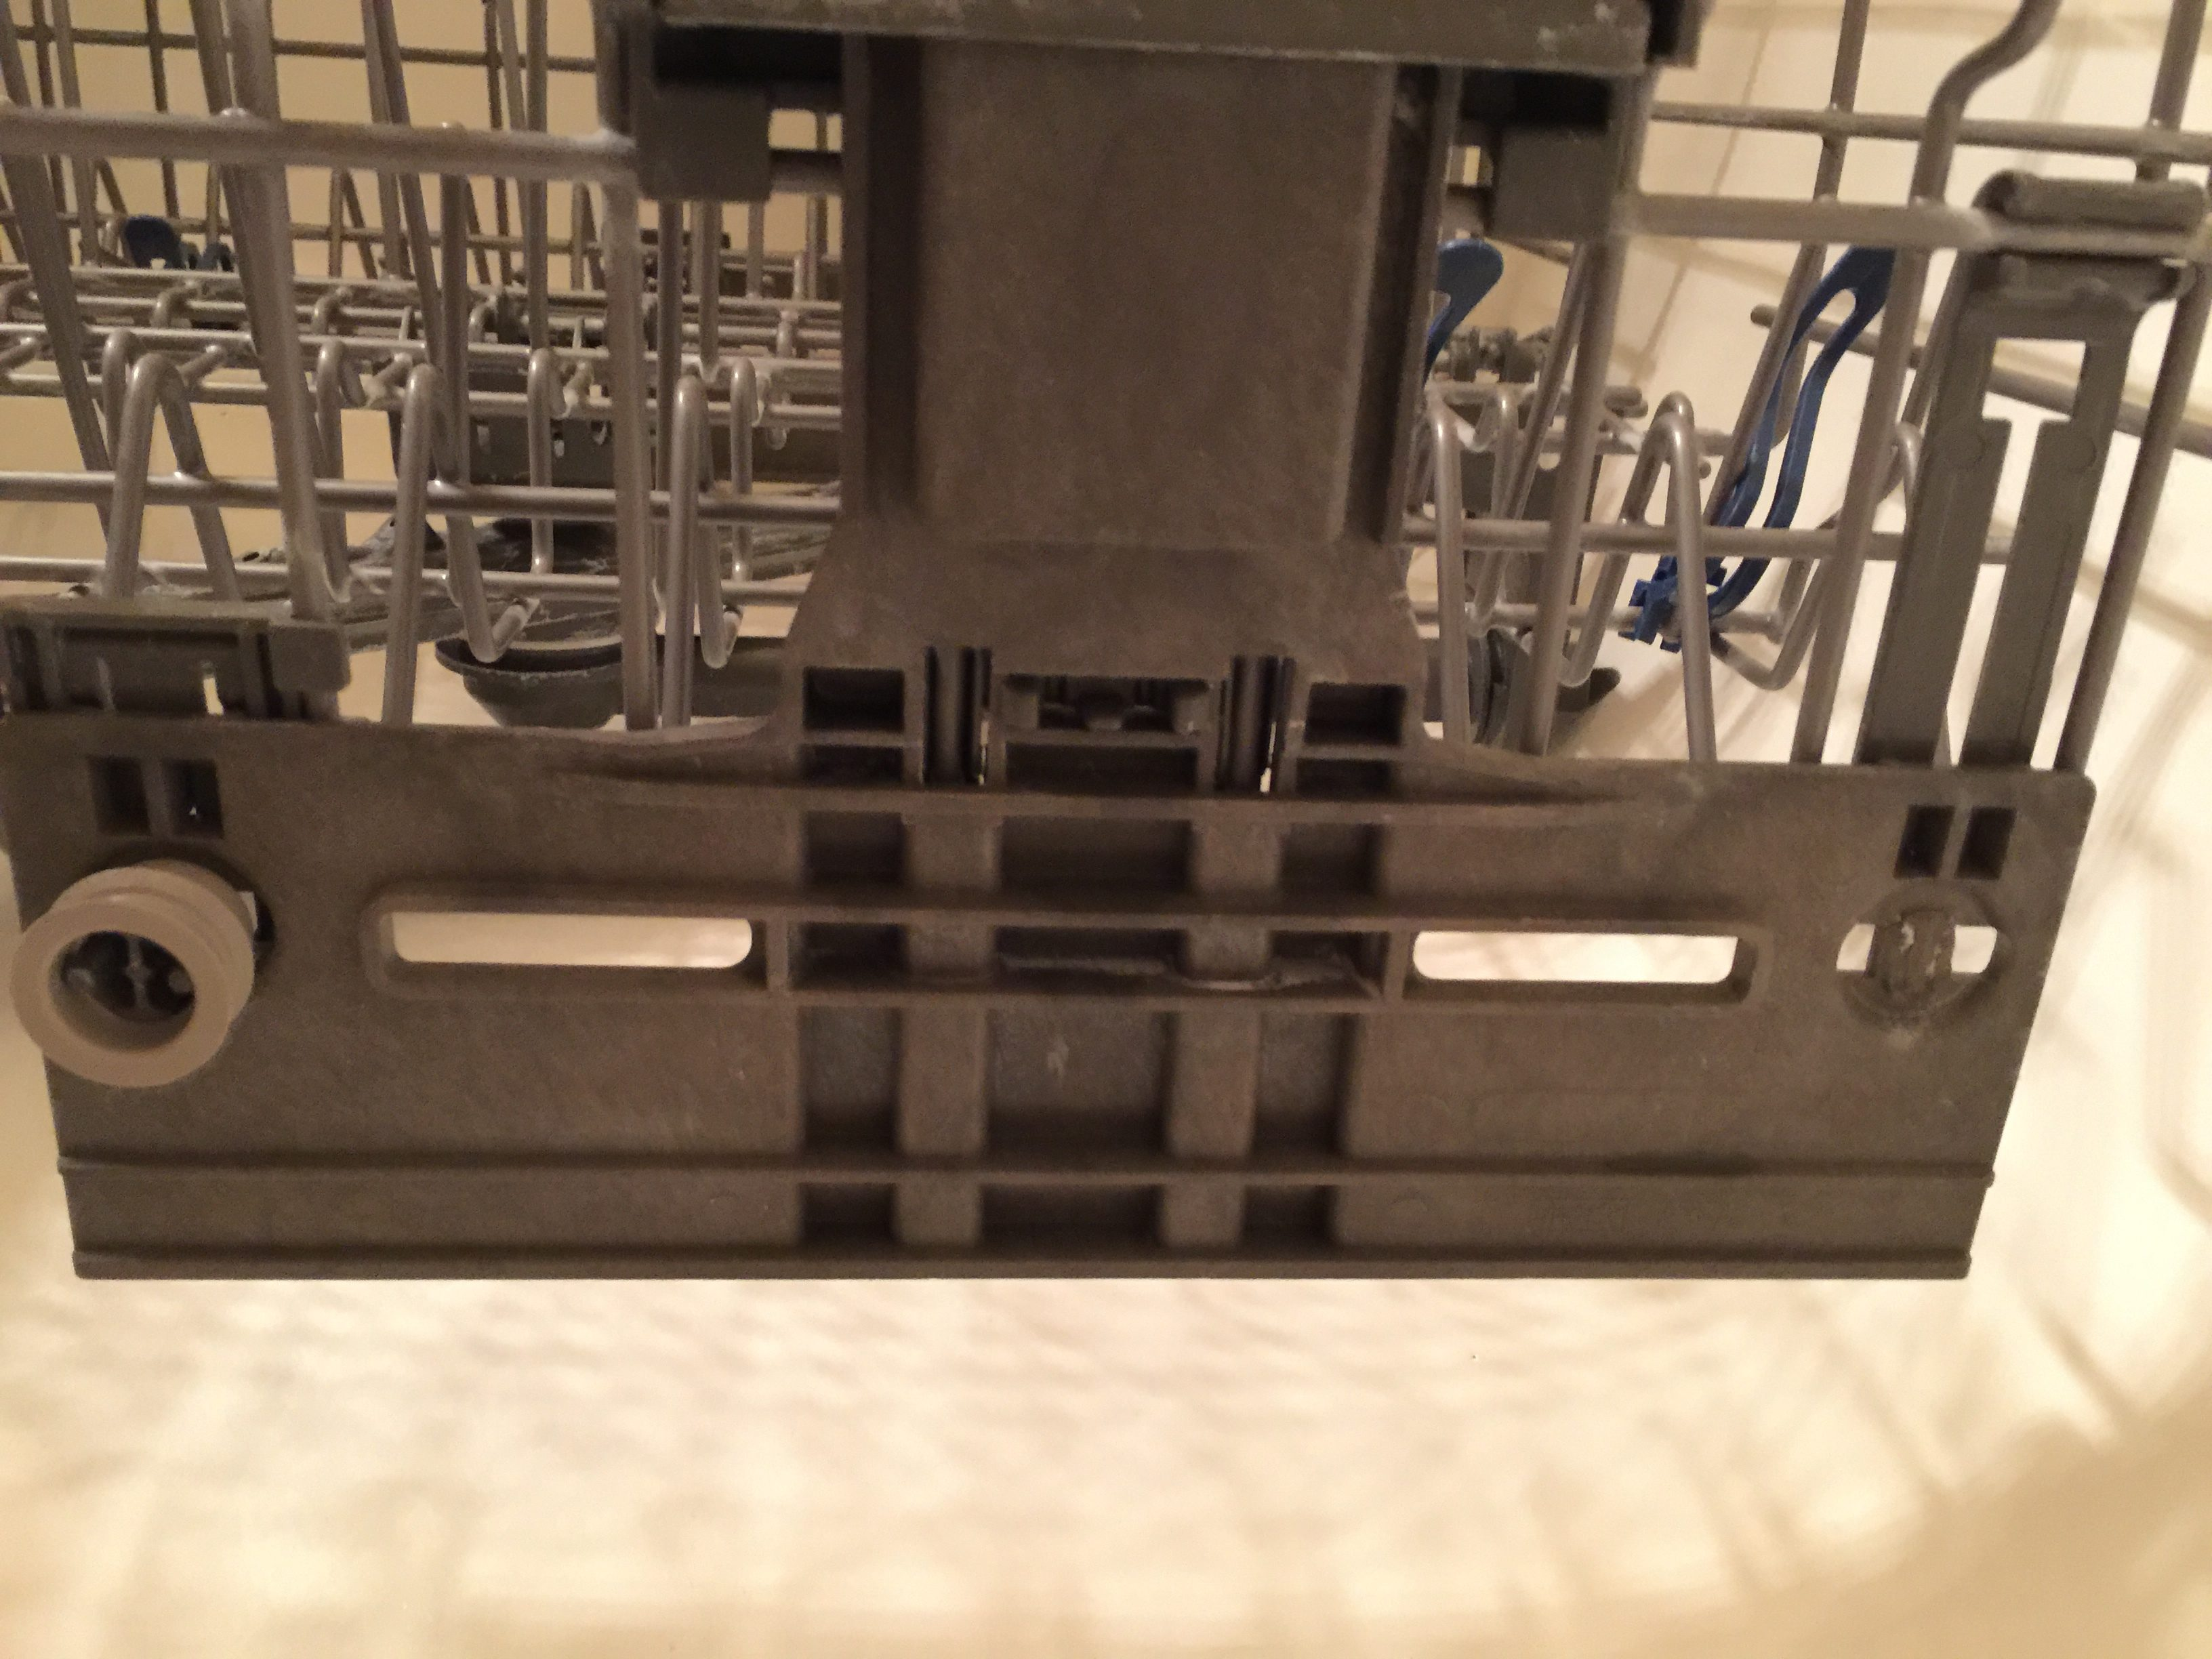 Top 831 Complaints and Reviews about KitchenAid Dishwashers | Page 5